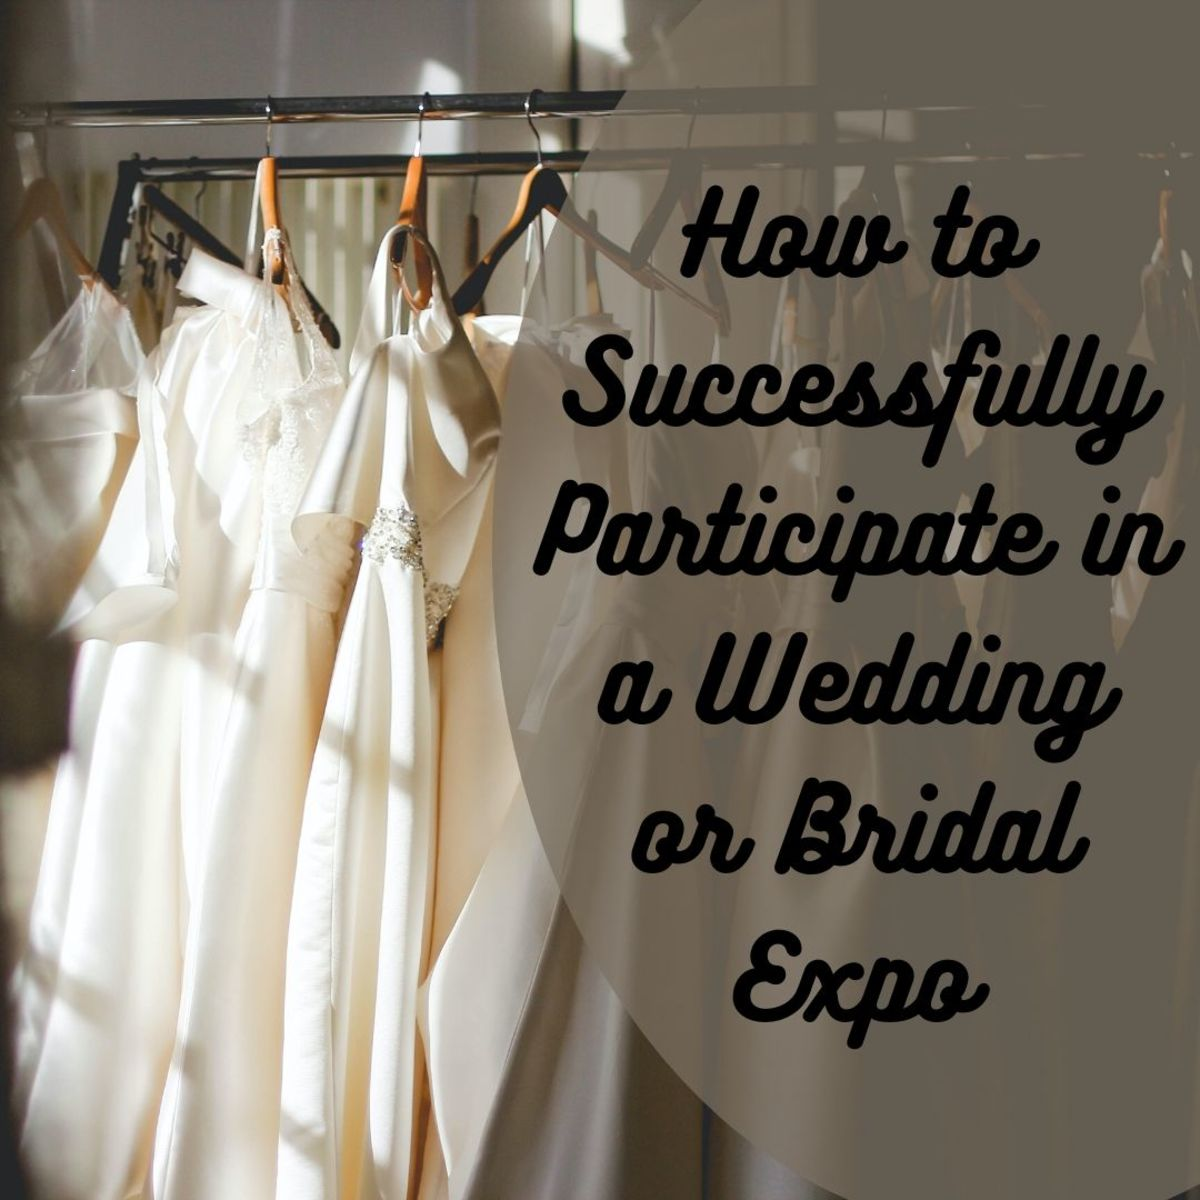 Learn all the tips and tricks you'll need to have a successful presence at a wedding or bridal expo or show.